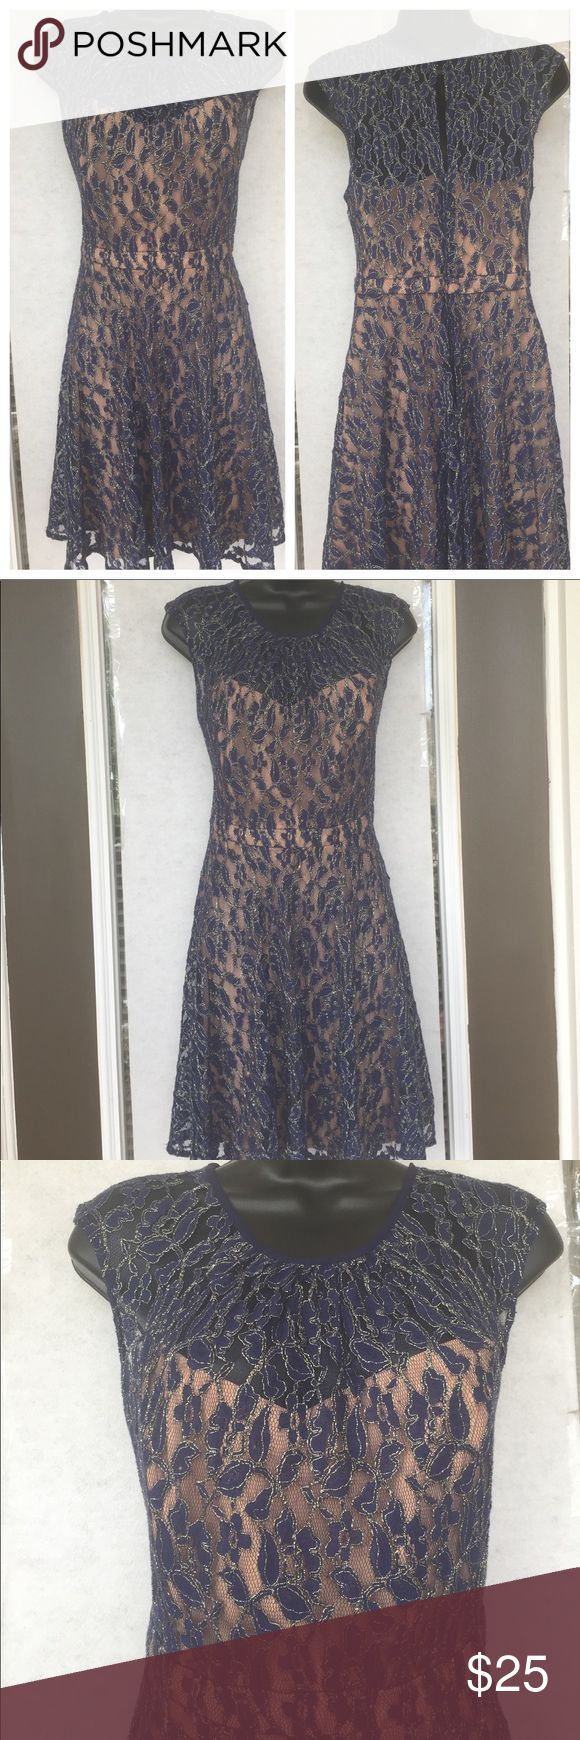 MM Coture Sheer Lace Dress MM Coture Sheer Lace Dress. Zip and back clasp enclosure. Lined. Excellent condition. MM Couture Dresses